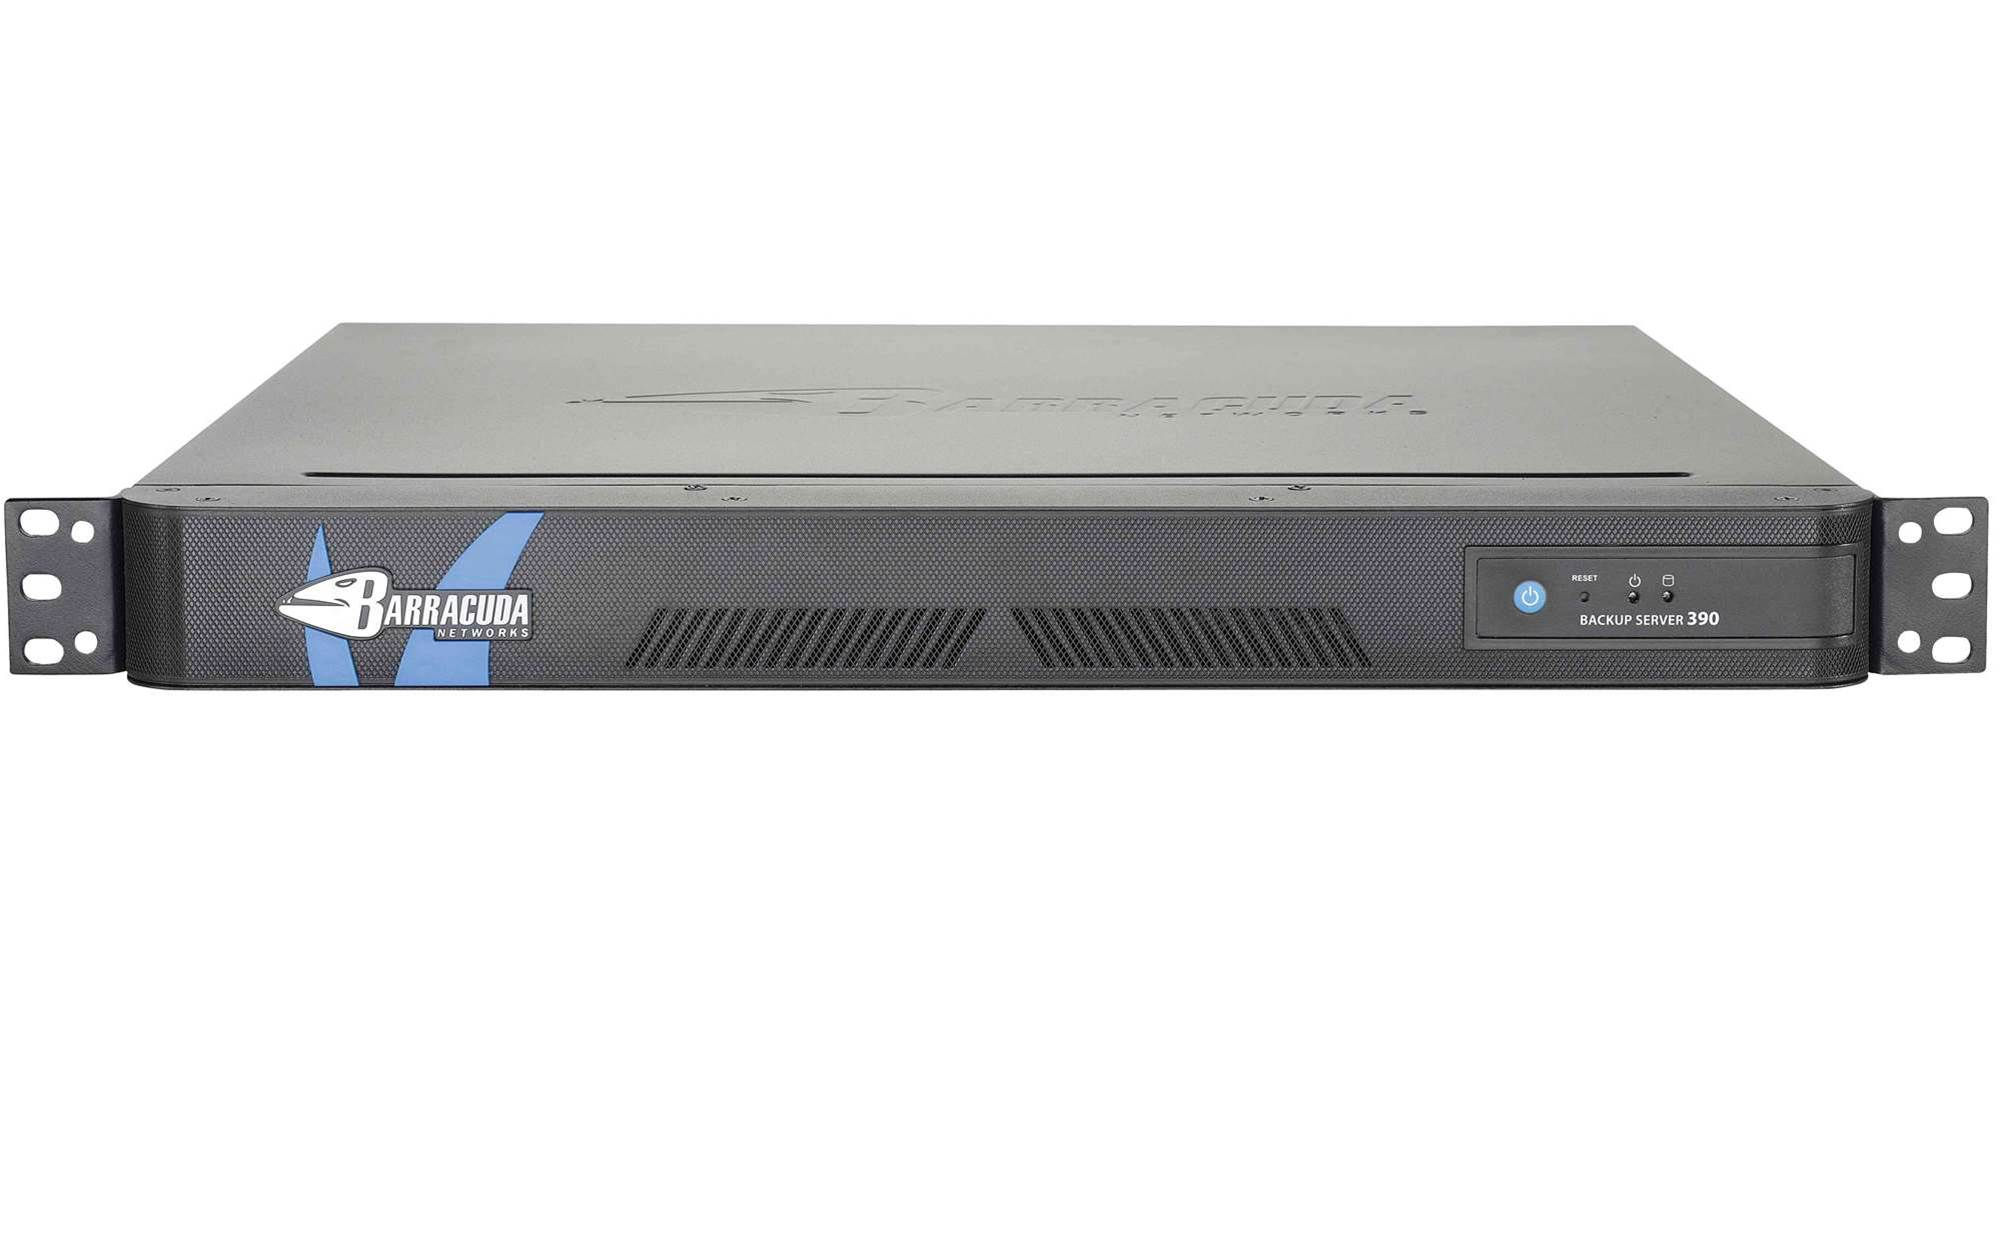 Barracuda Backup Server 390